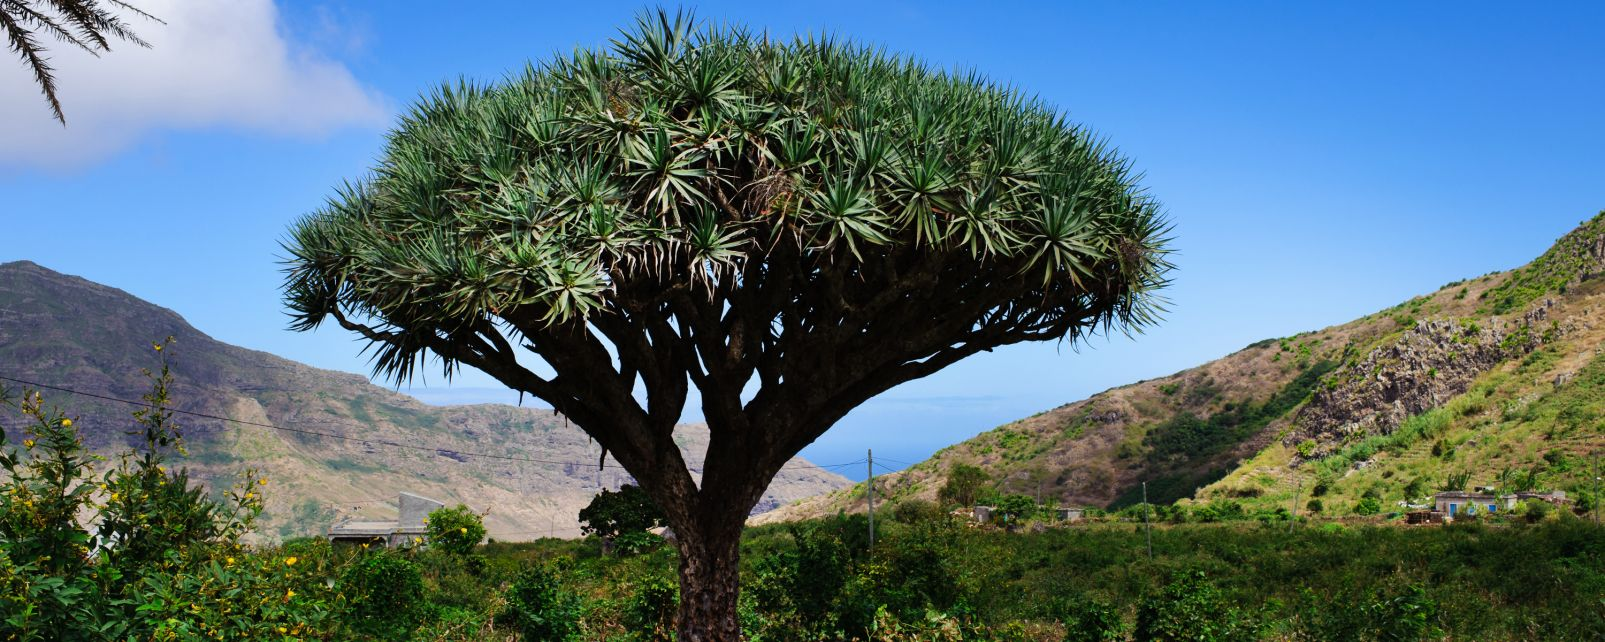 Vegetation in Cape Verde, The dragon-tree, The fauna and flora, Cape Verde